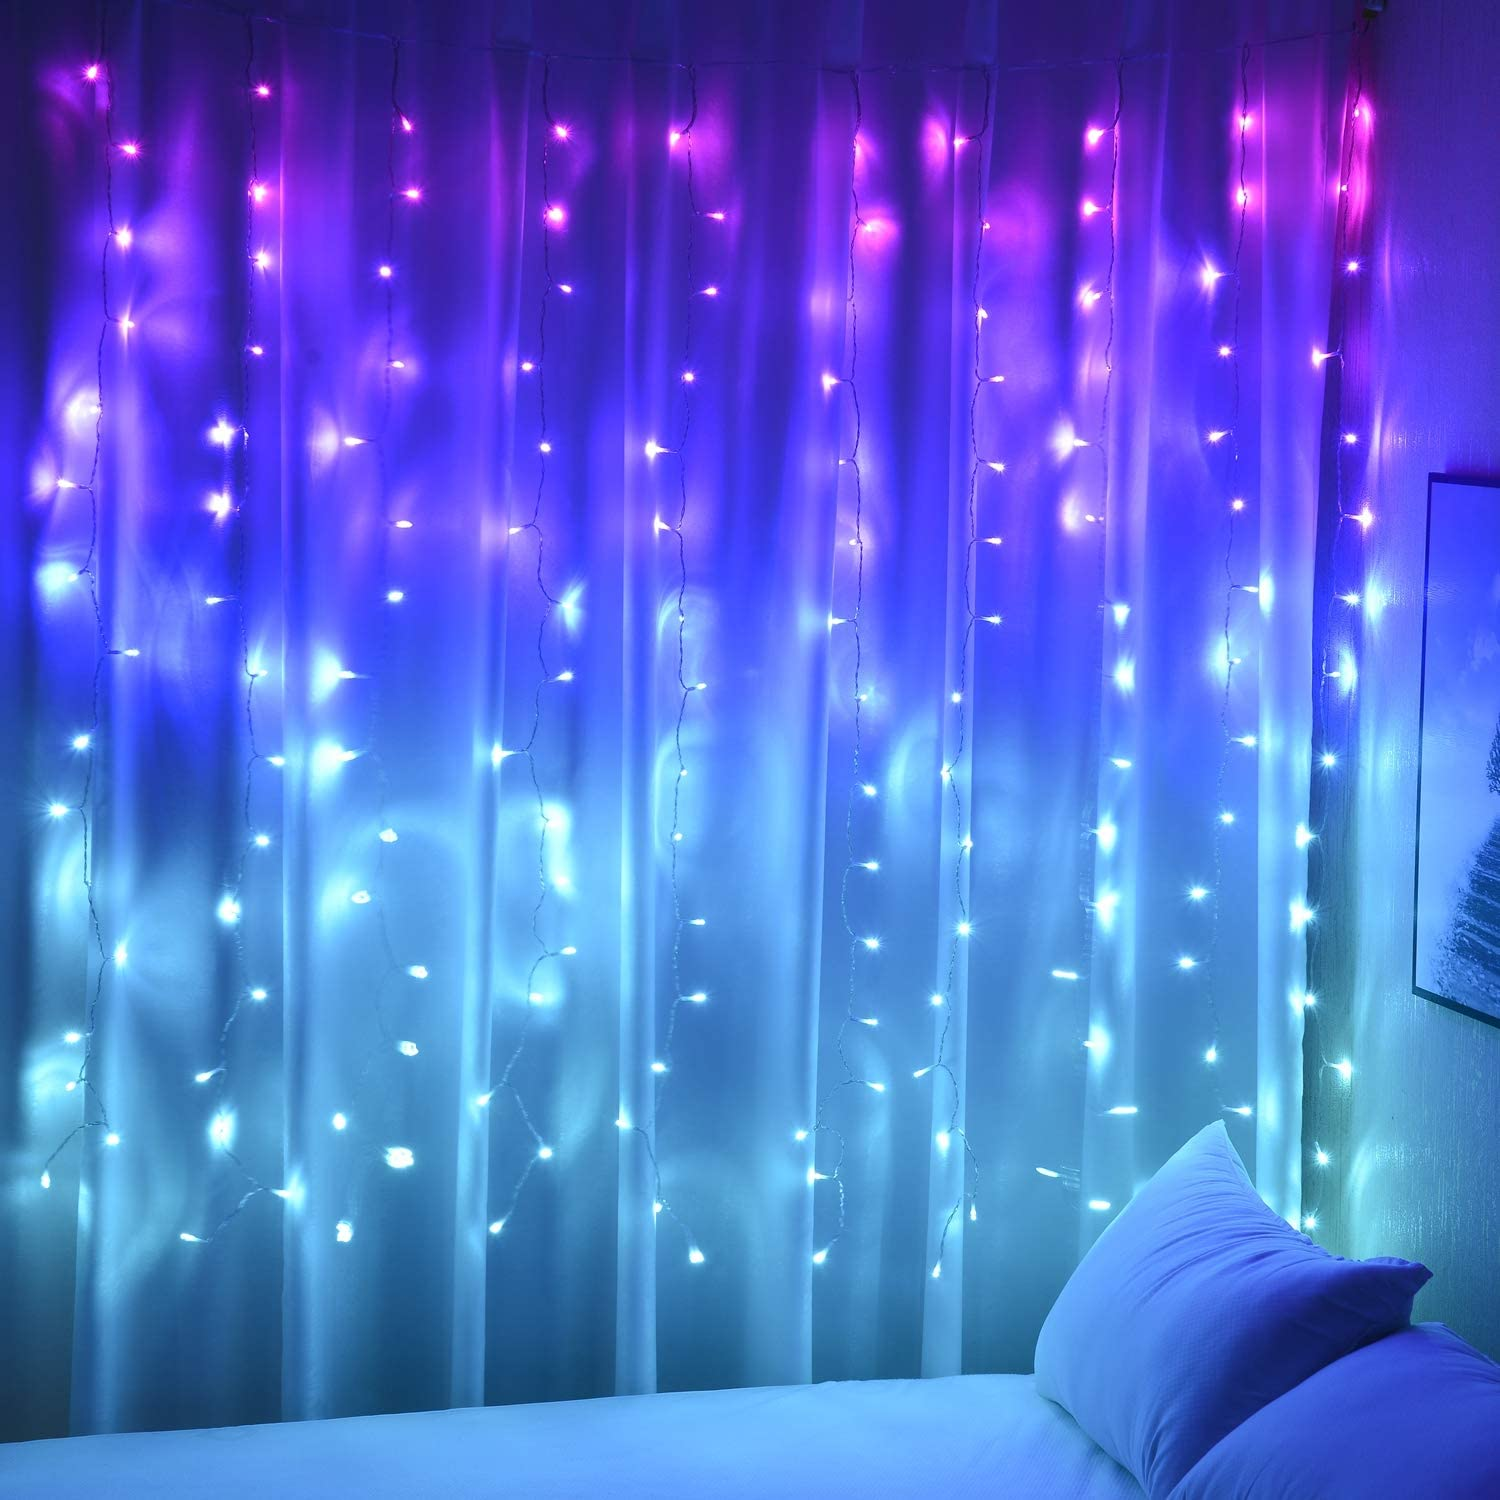 Curtain Lights Pink Blue Purple Fairy Lights for Bedroom Wall Hanging Christmas Lights Twinkly for Teen Girls Unicorn Mermaid Under The Sea Ocean Nautical Beach Themed Room Decor (Purple Blue Ombre)